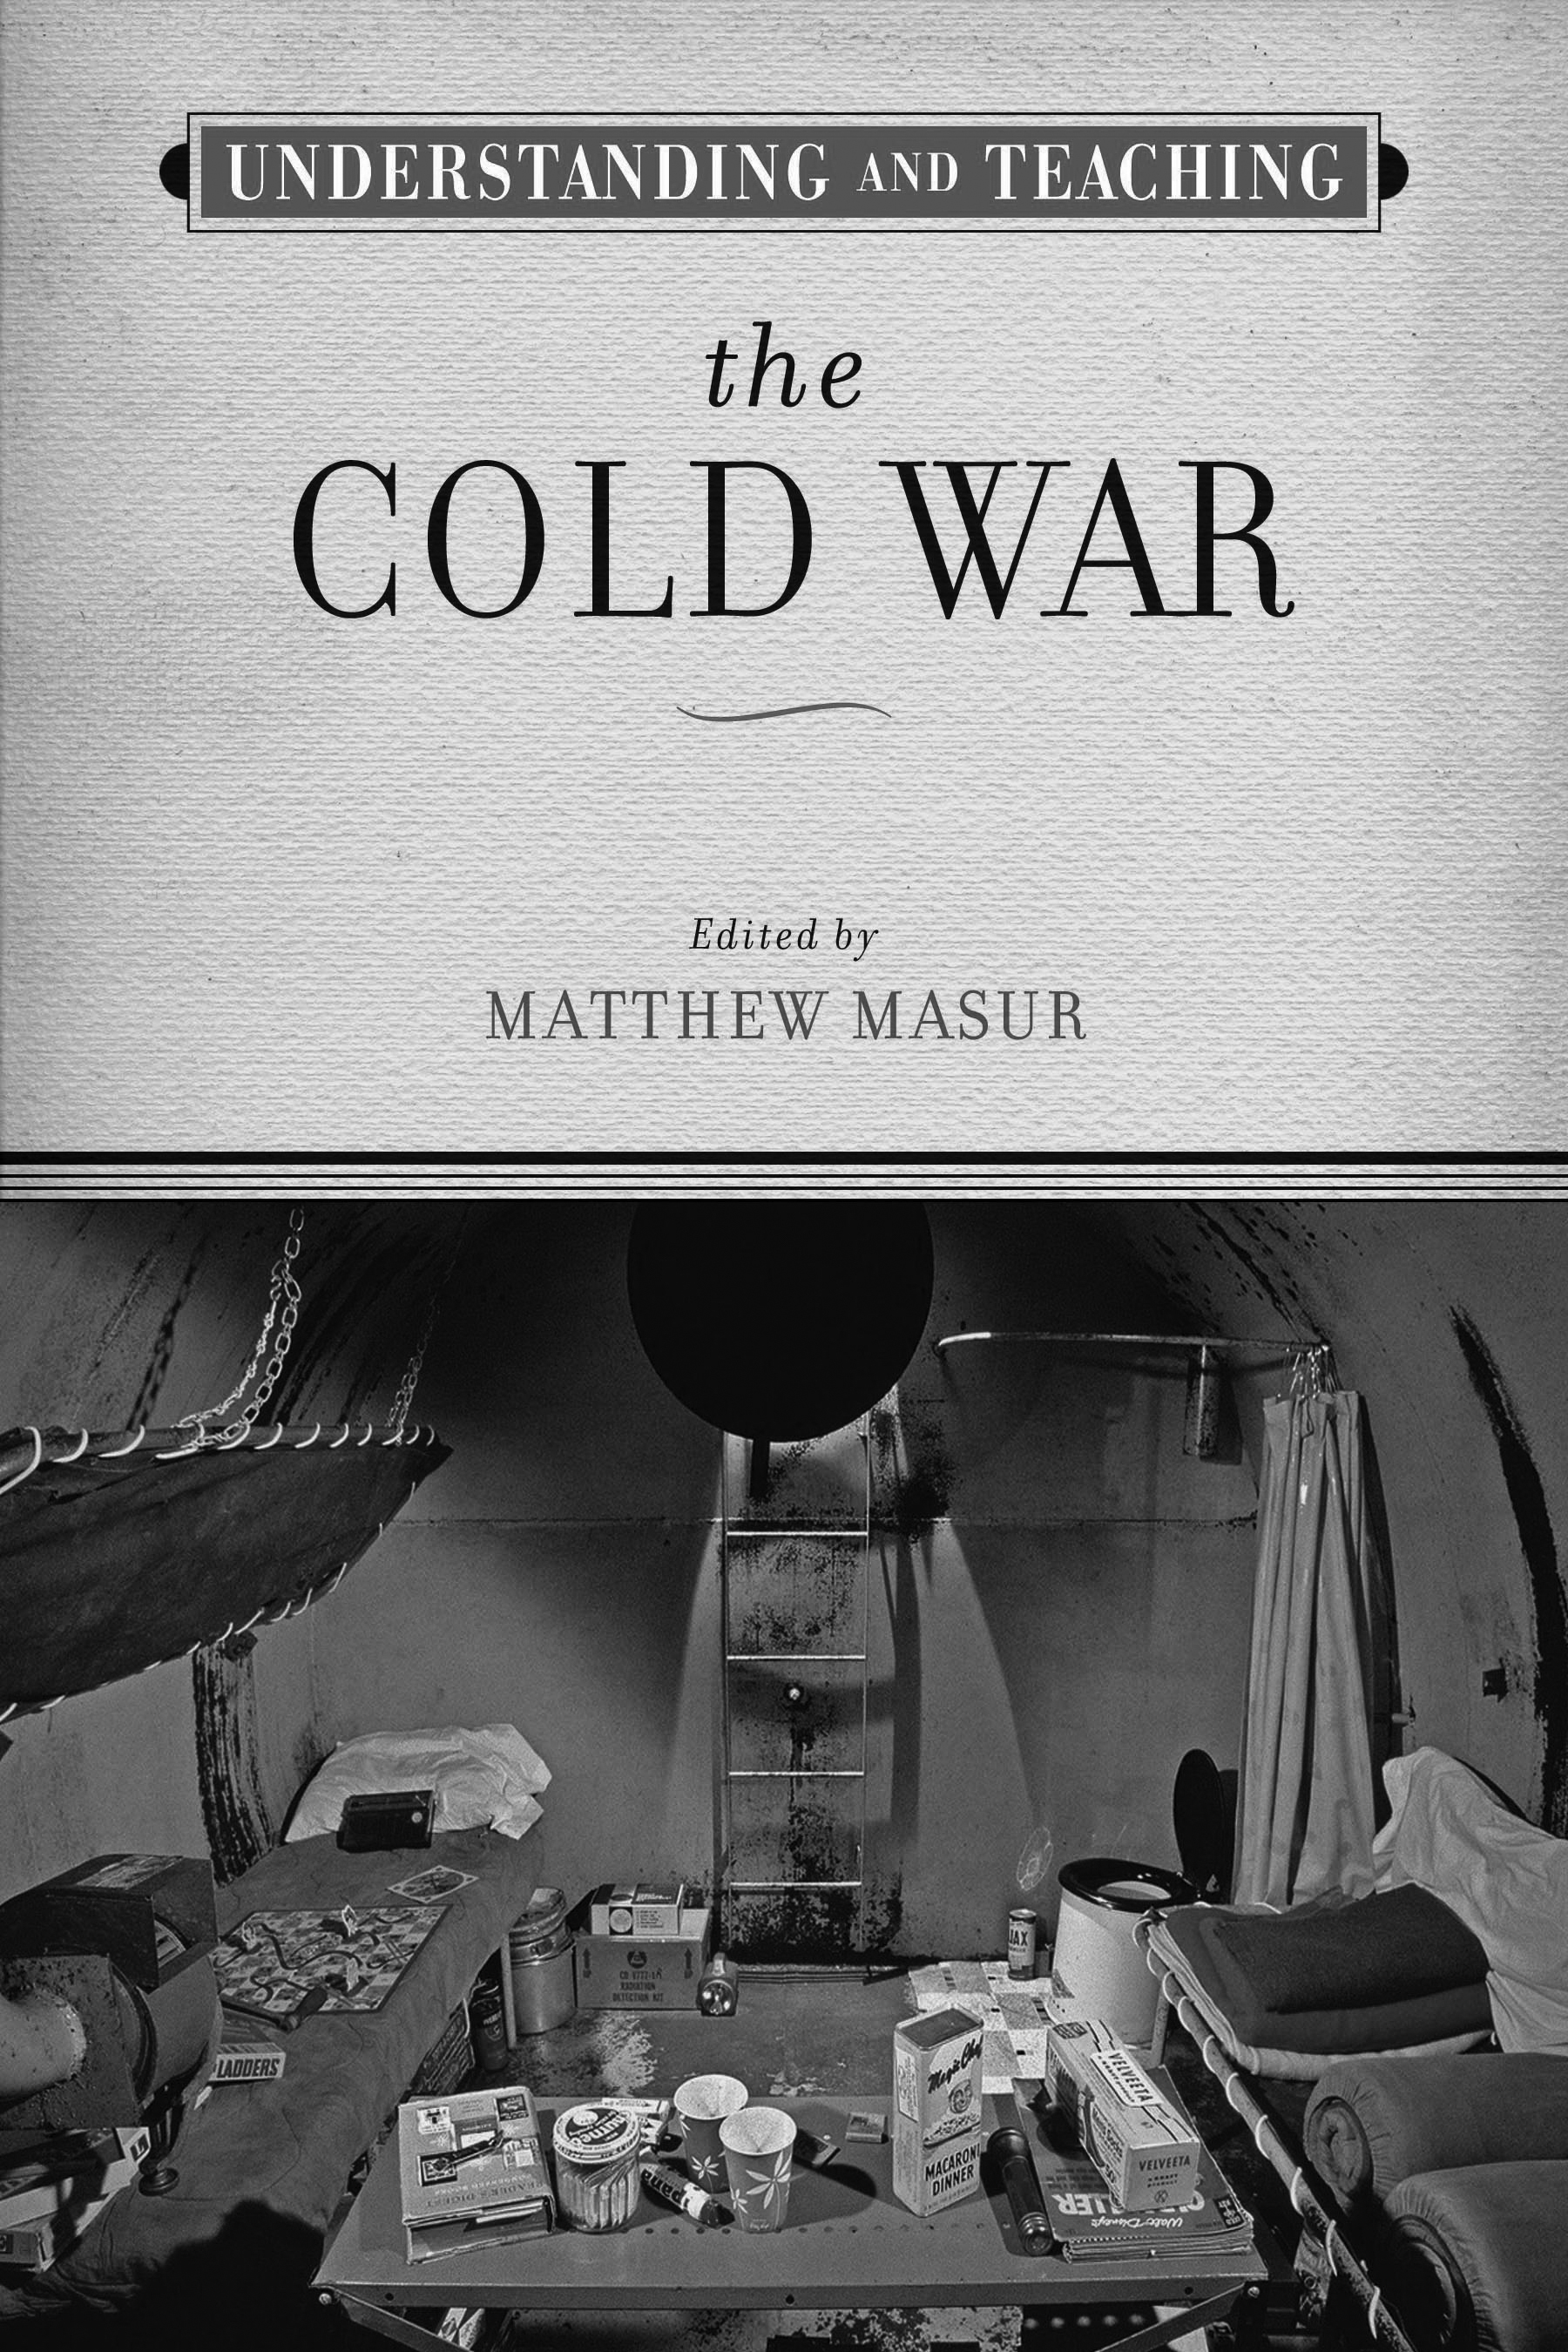 uw press understanding and teaching the cold war high resolution cover b w